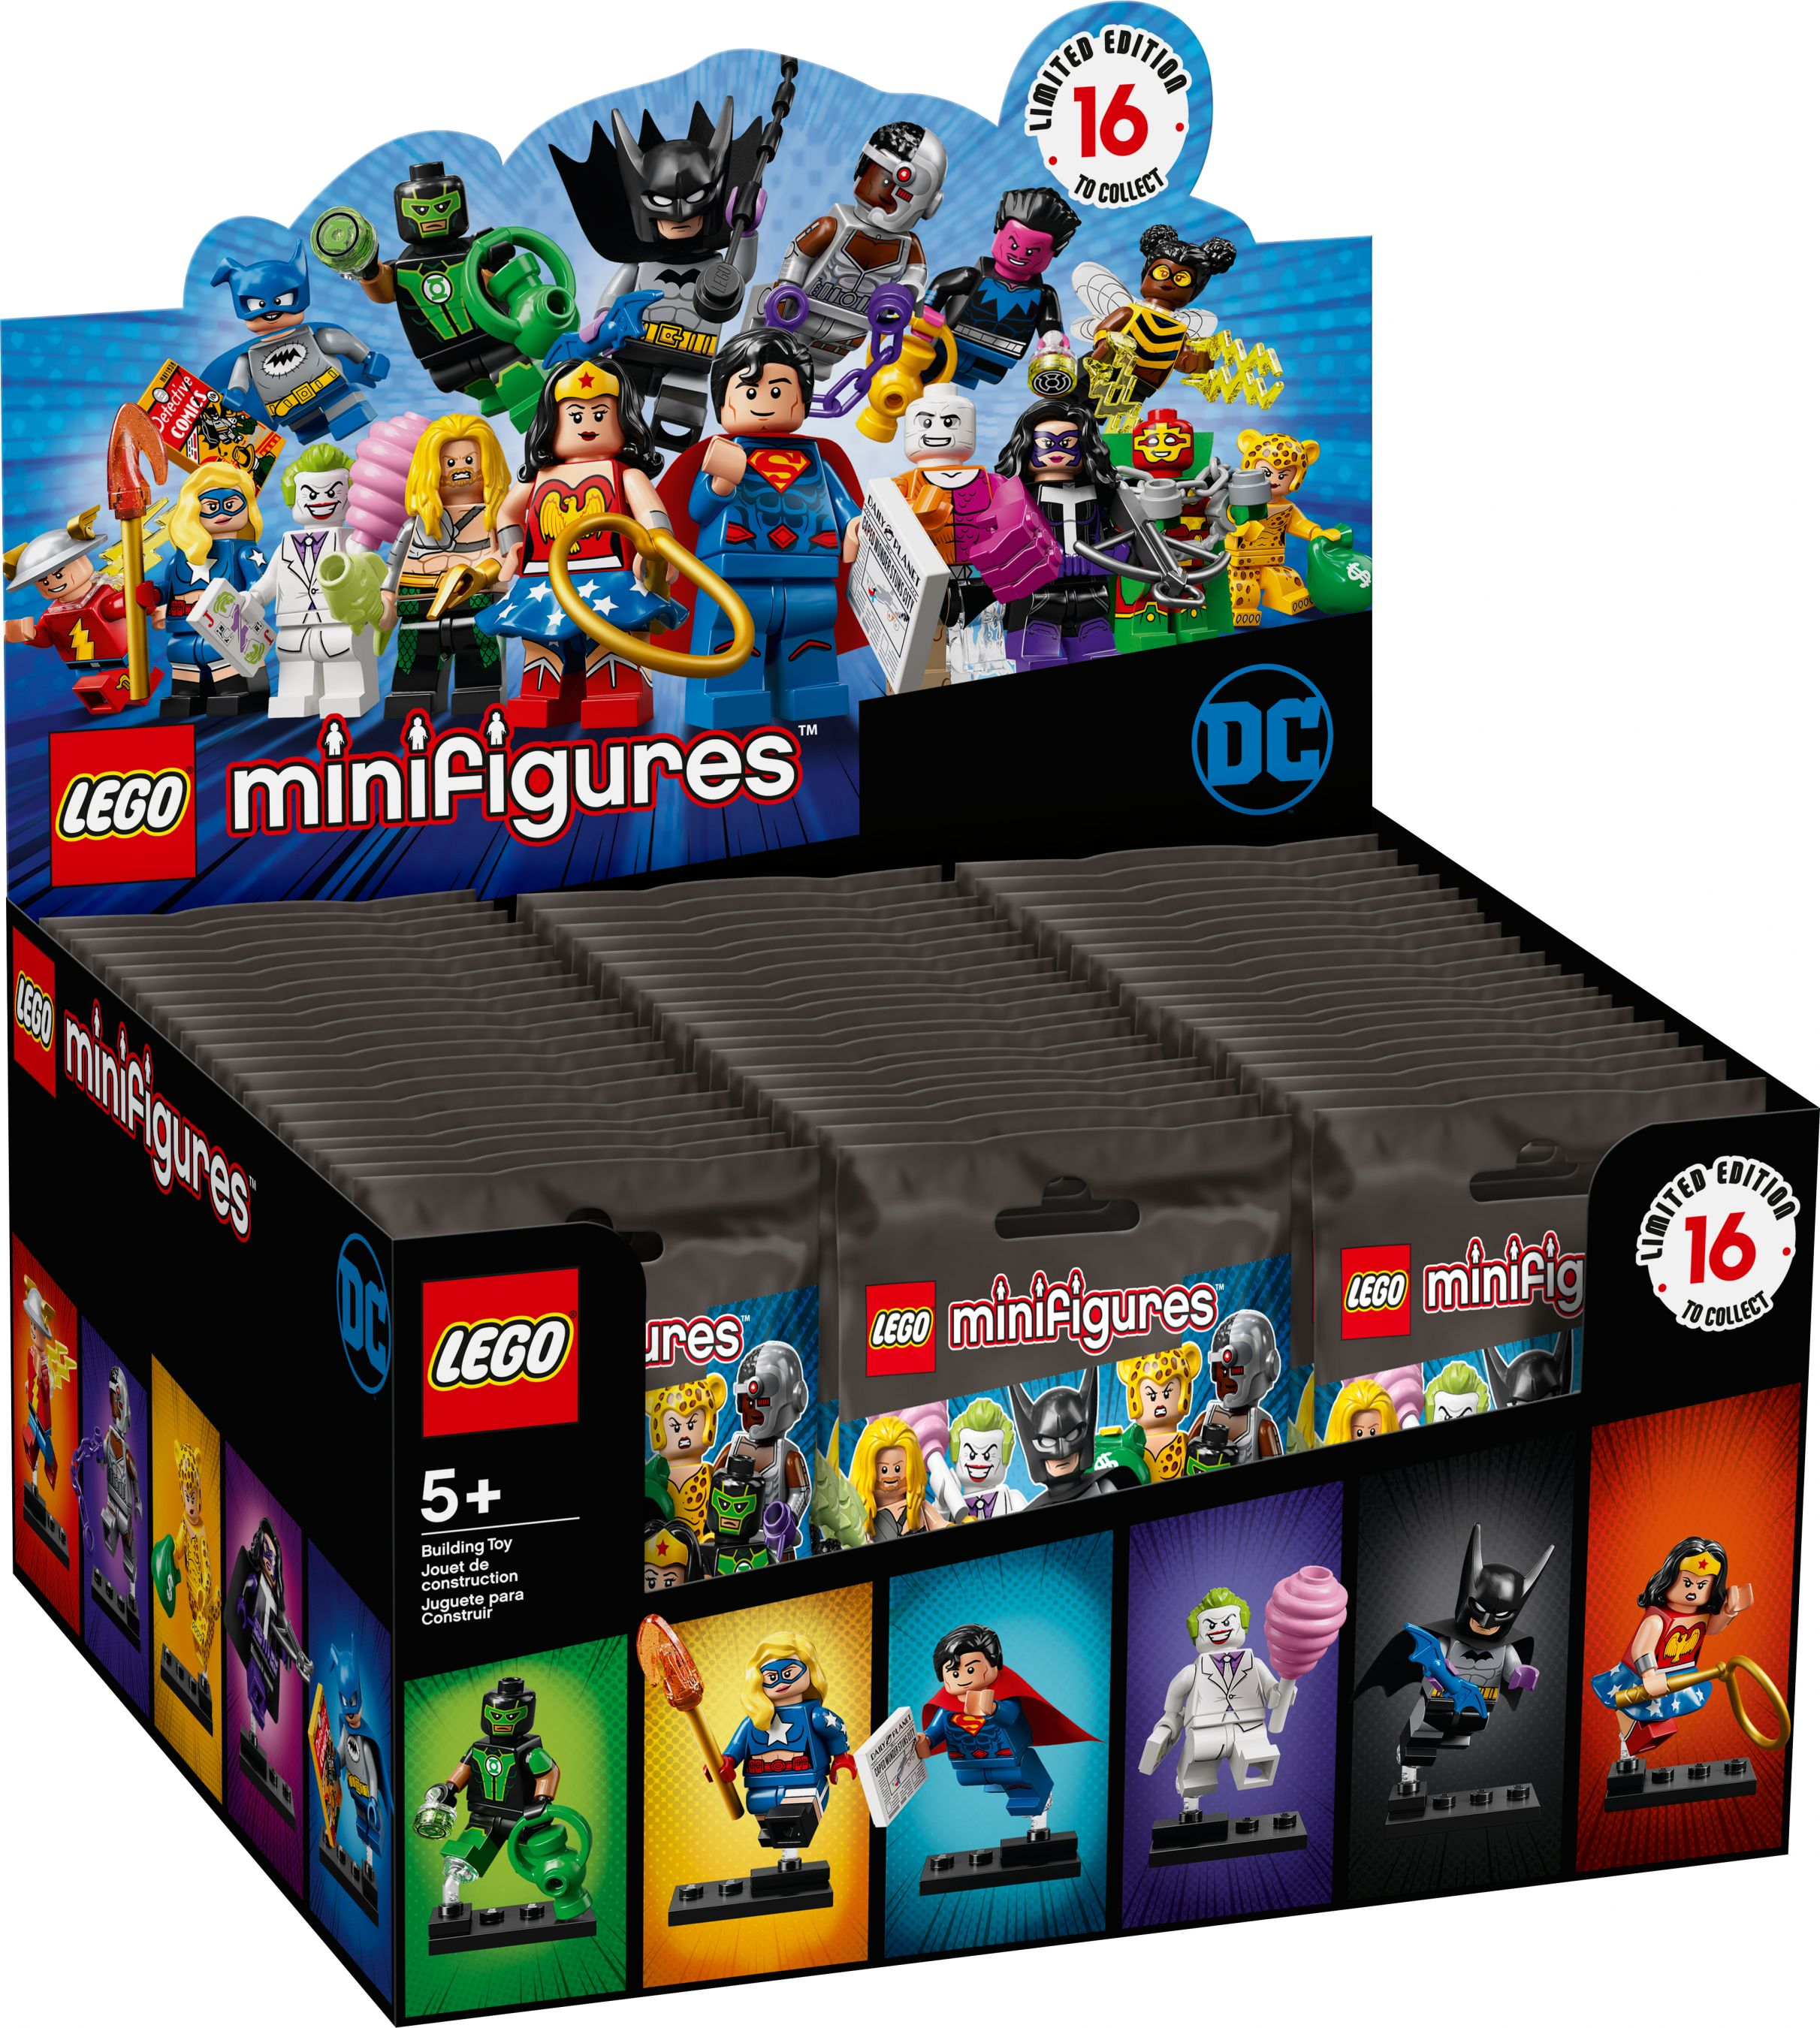 LEGO Collectable Minifigures 71026 LEGO® DC Super Heroes Series - 2 x 30er Box LEGO_71026_alt2.jpg